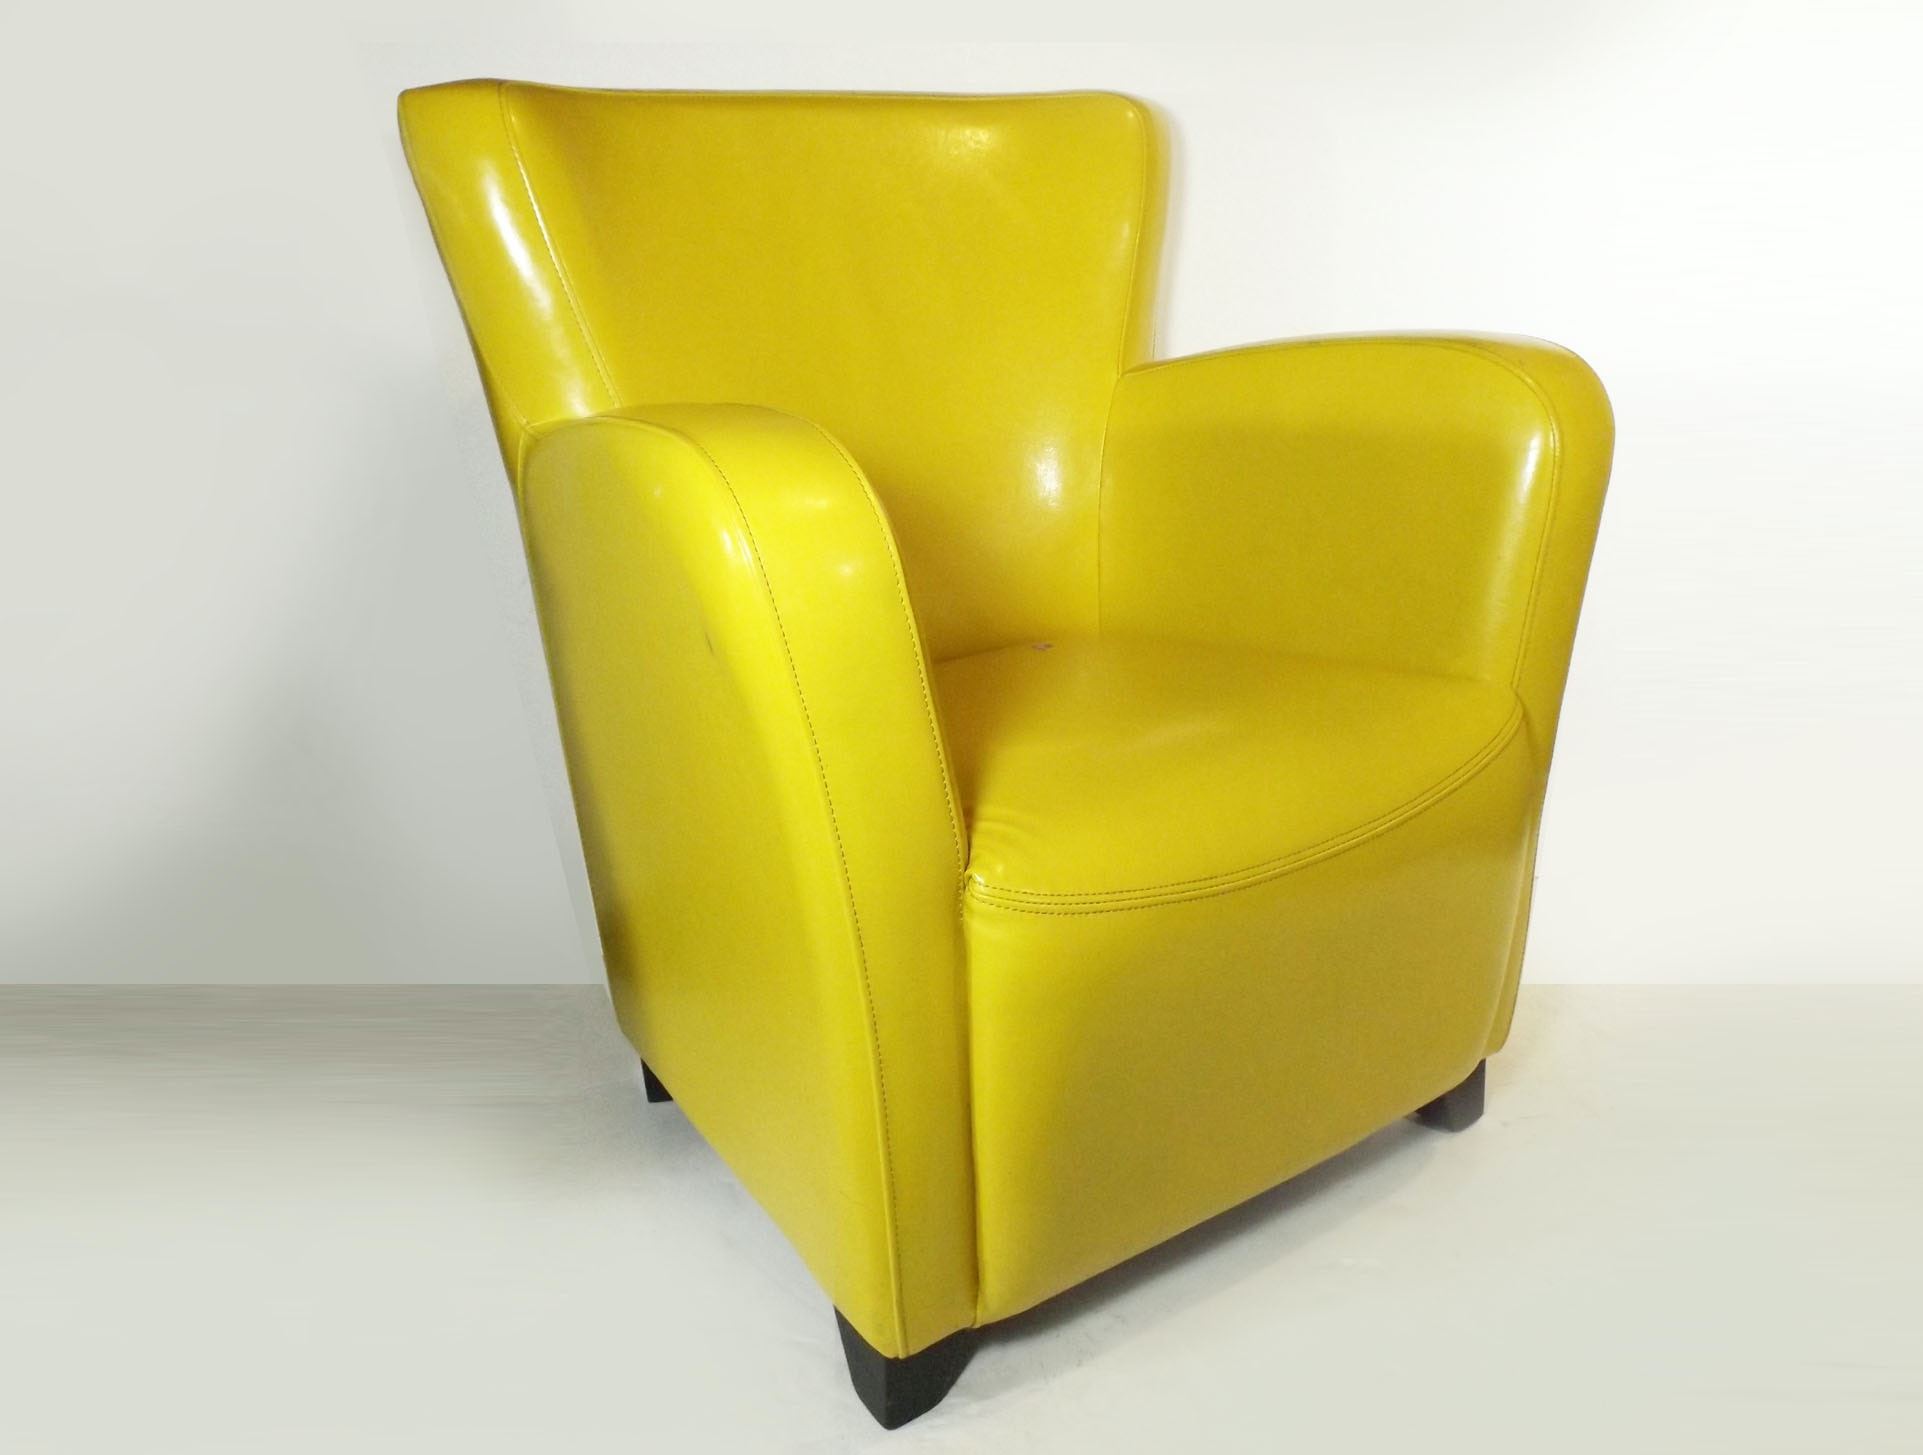 Canary Yellow Art Deco Style Club Chair